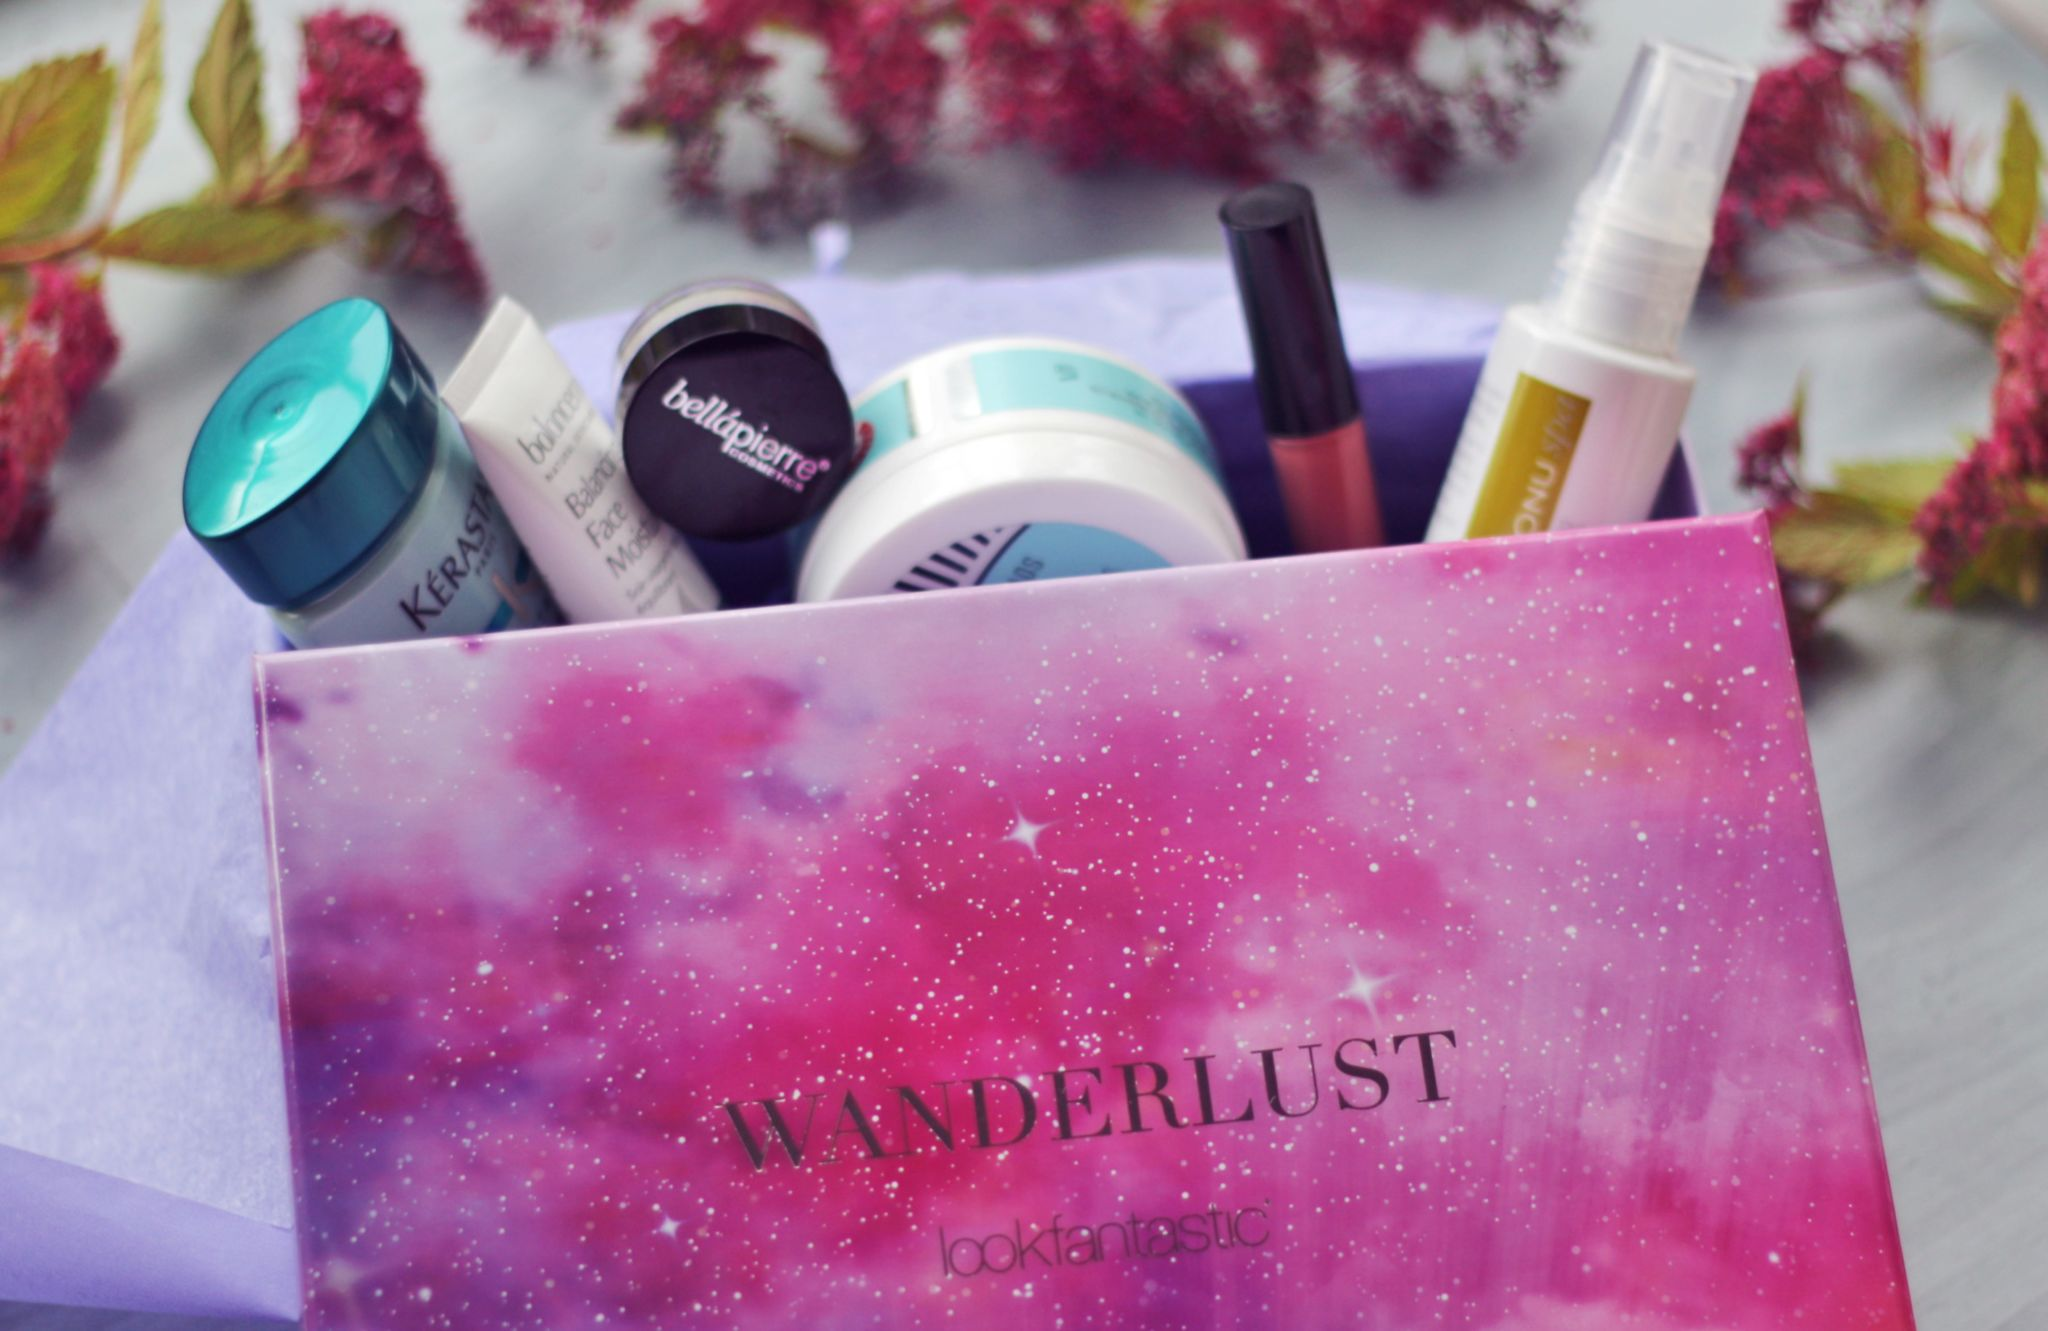 June 2017 Wanderlust Lookfantastic Beauty Box_IMG_6552